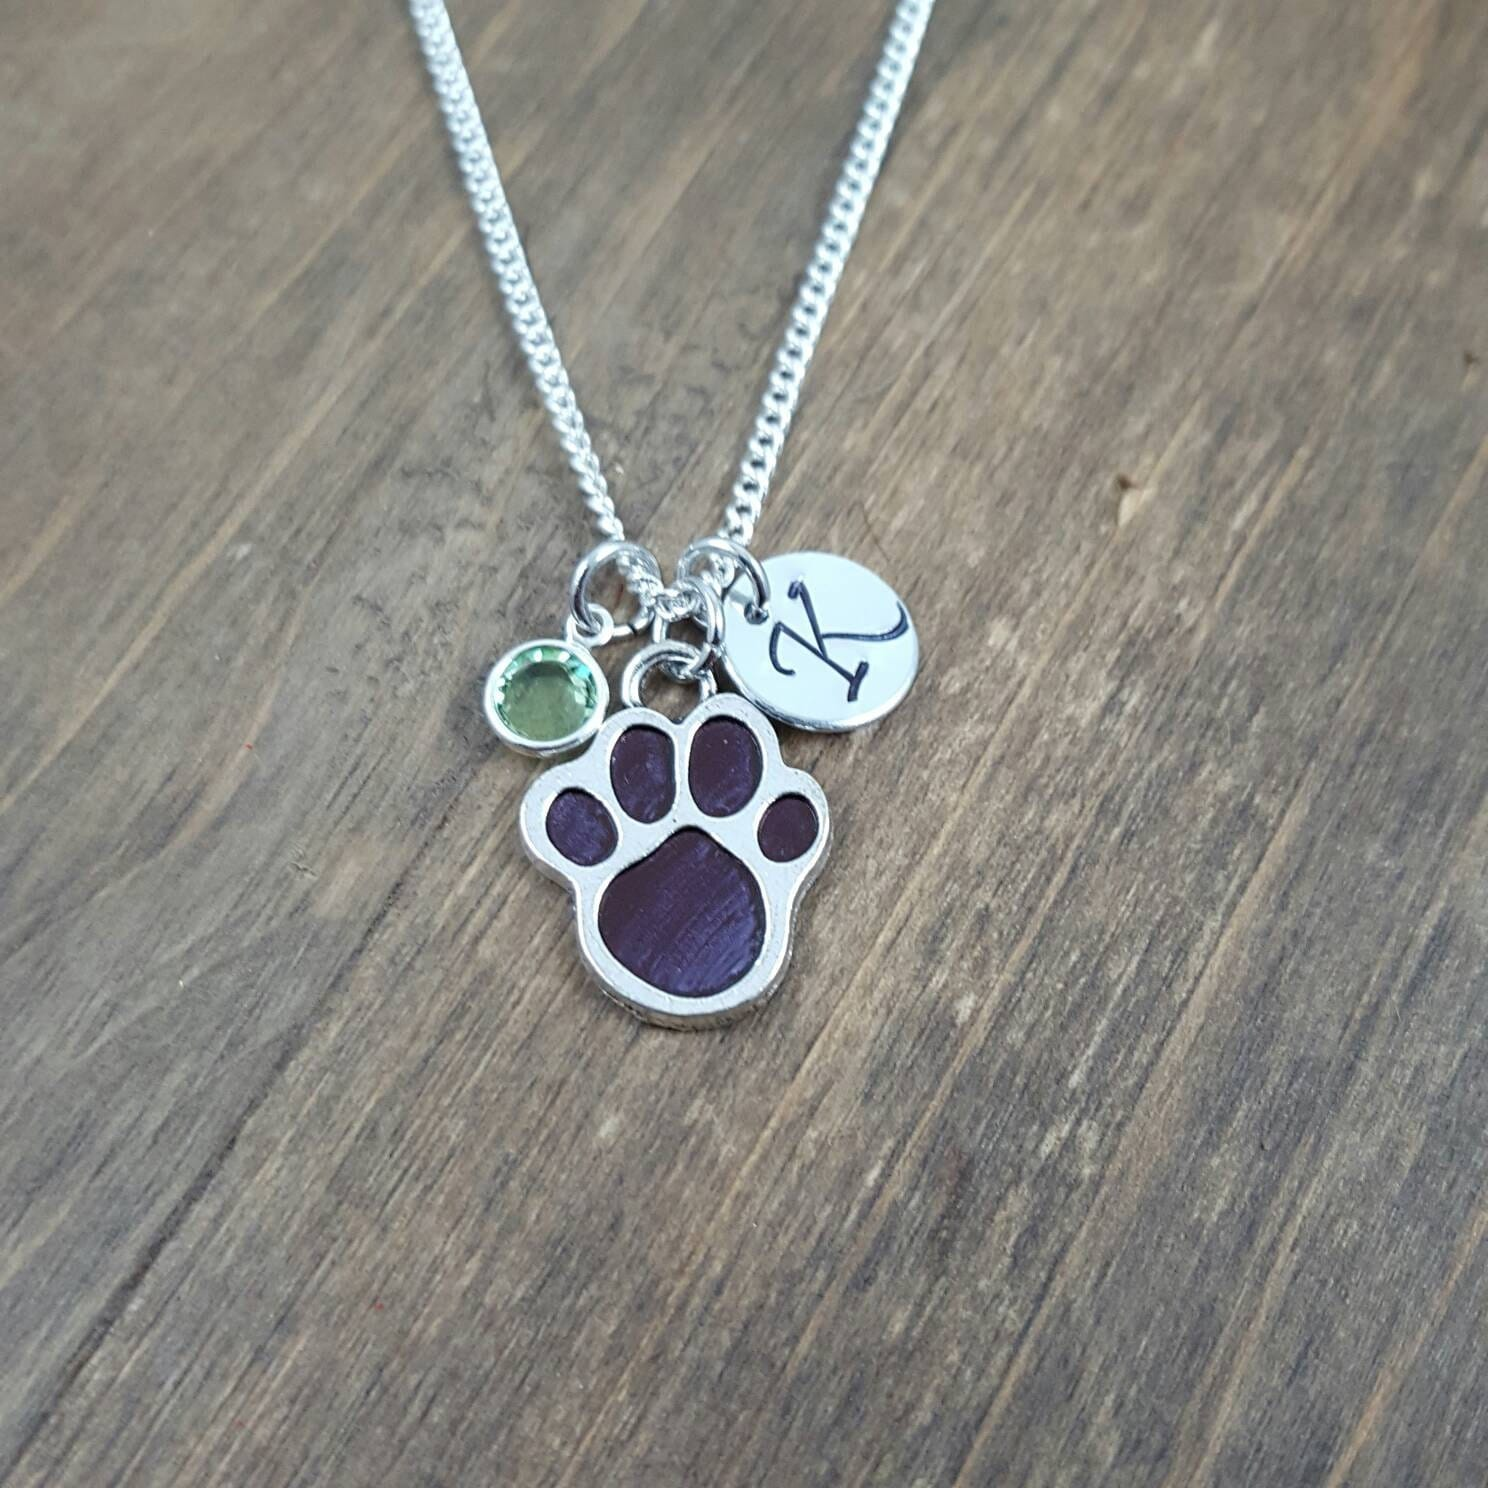 personalized paw print necklace sted monogram